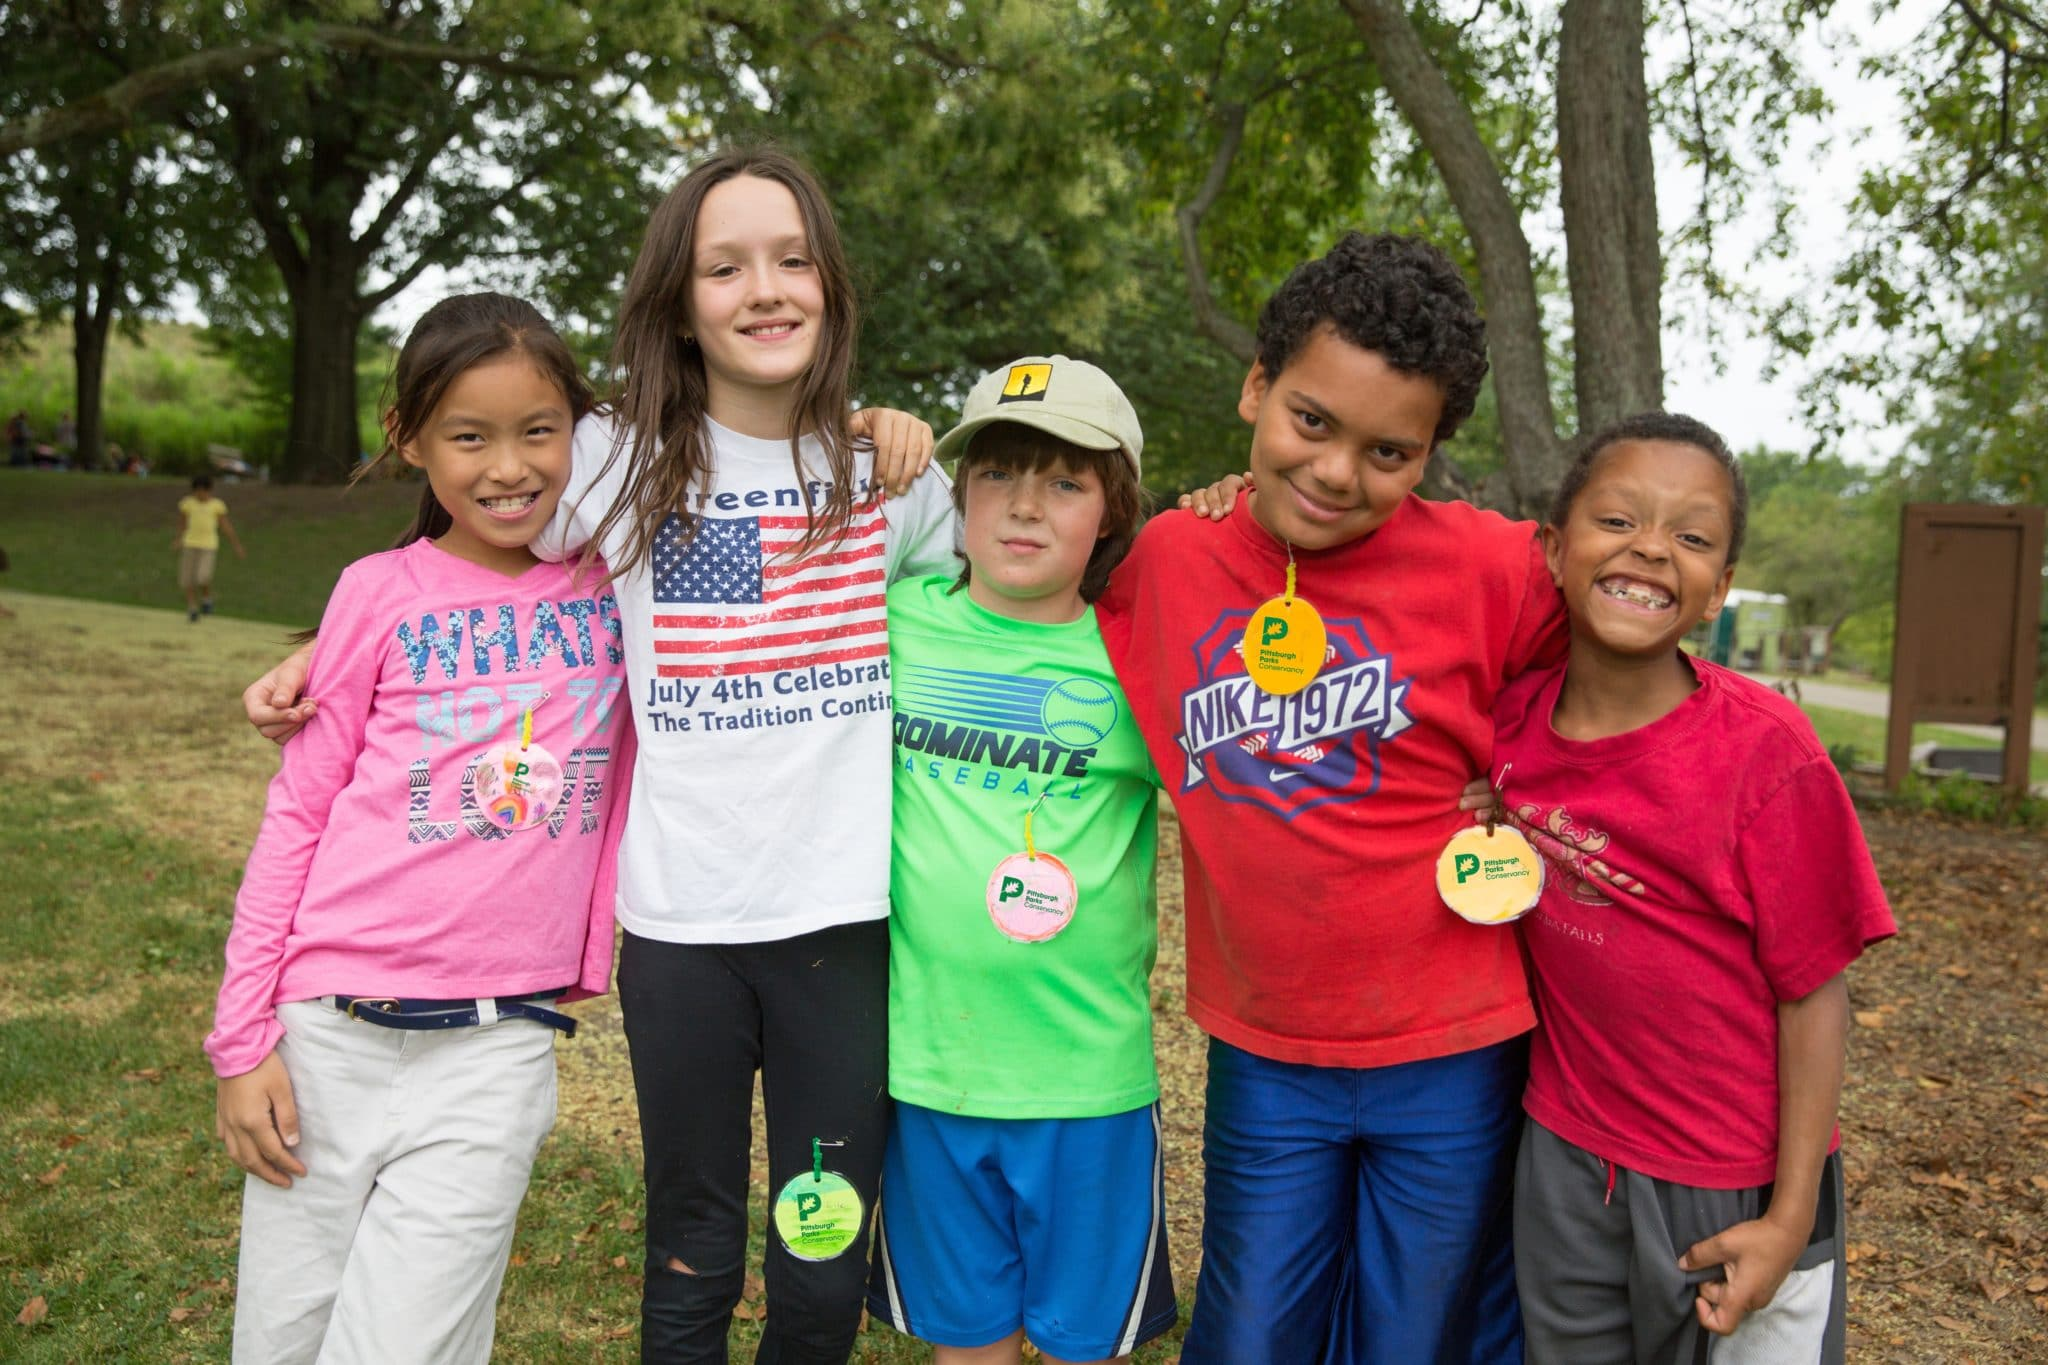 Summer Camp Education Program 2015 Mark Simpson Diverse Ethnic Line Kids Smile Outside Trees Pink Green Red H